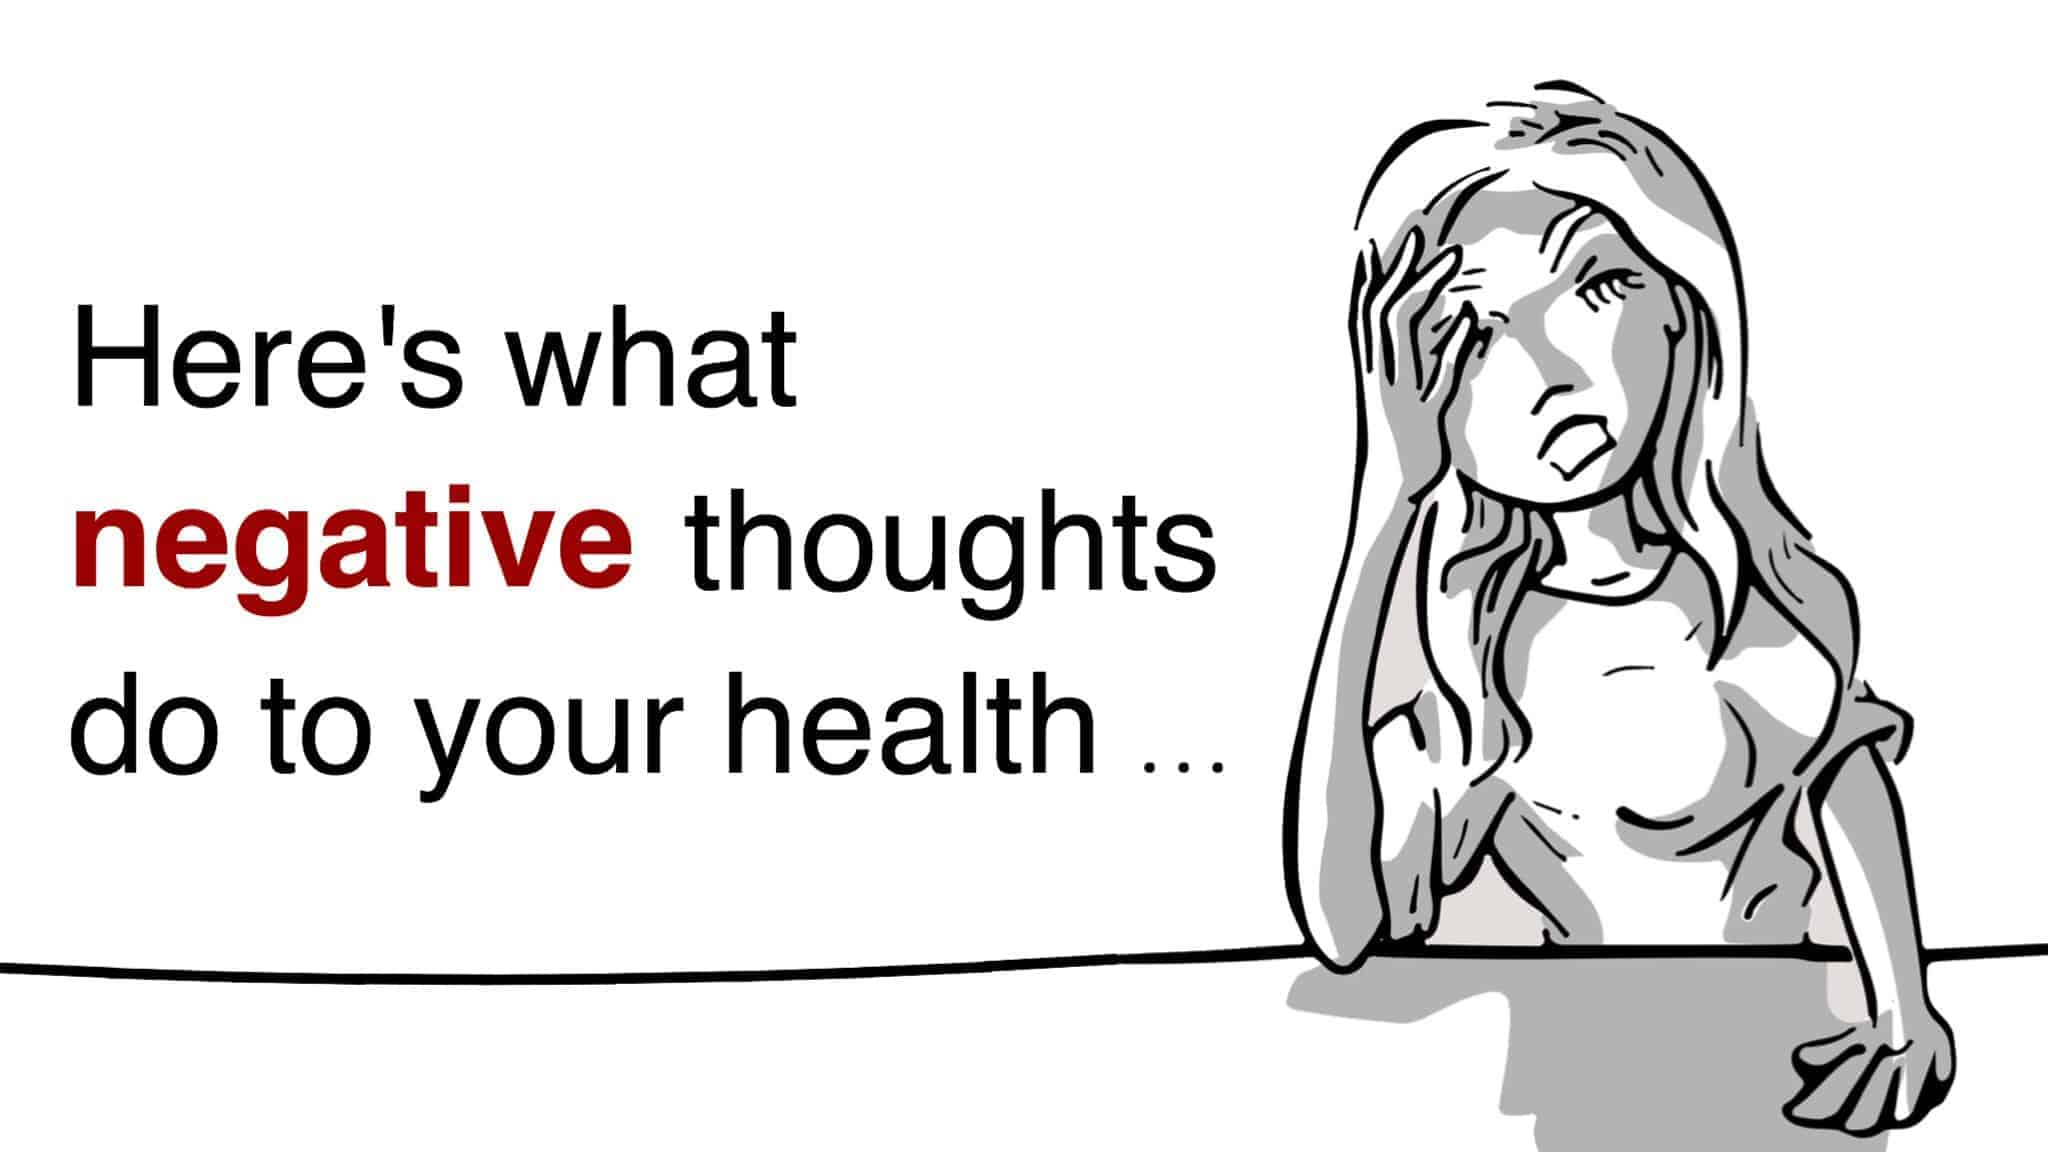 Researchers Reveal What Negative Thoughts Can Do To Your